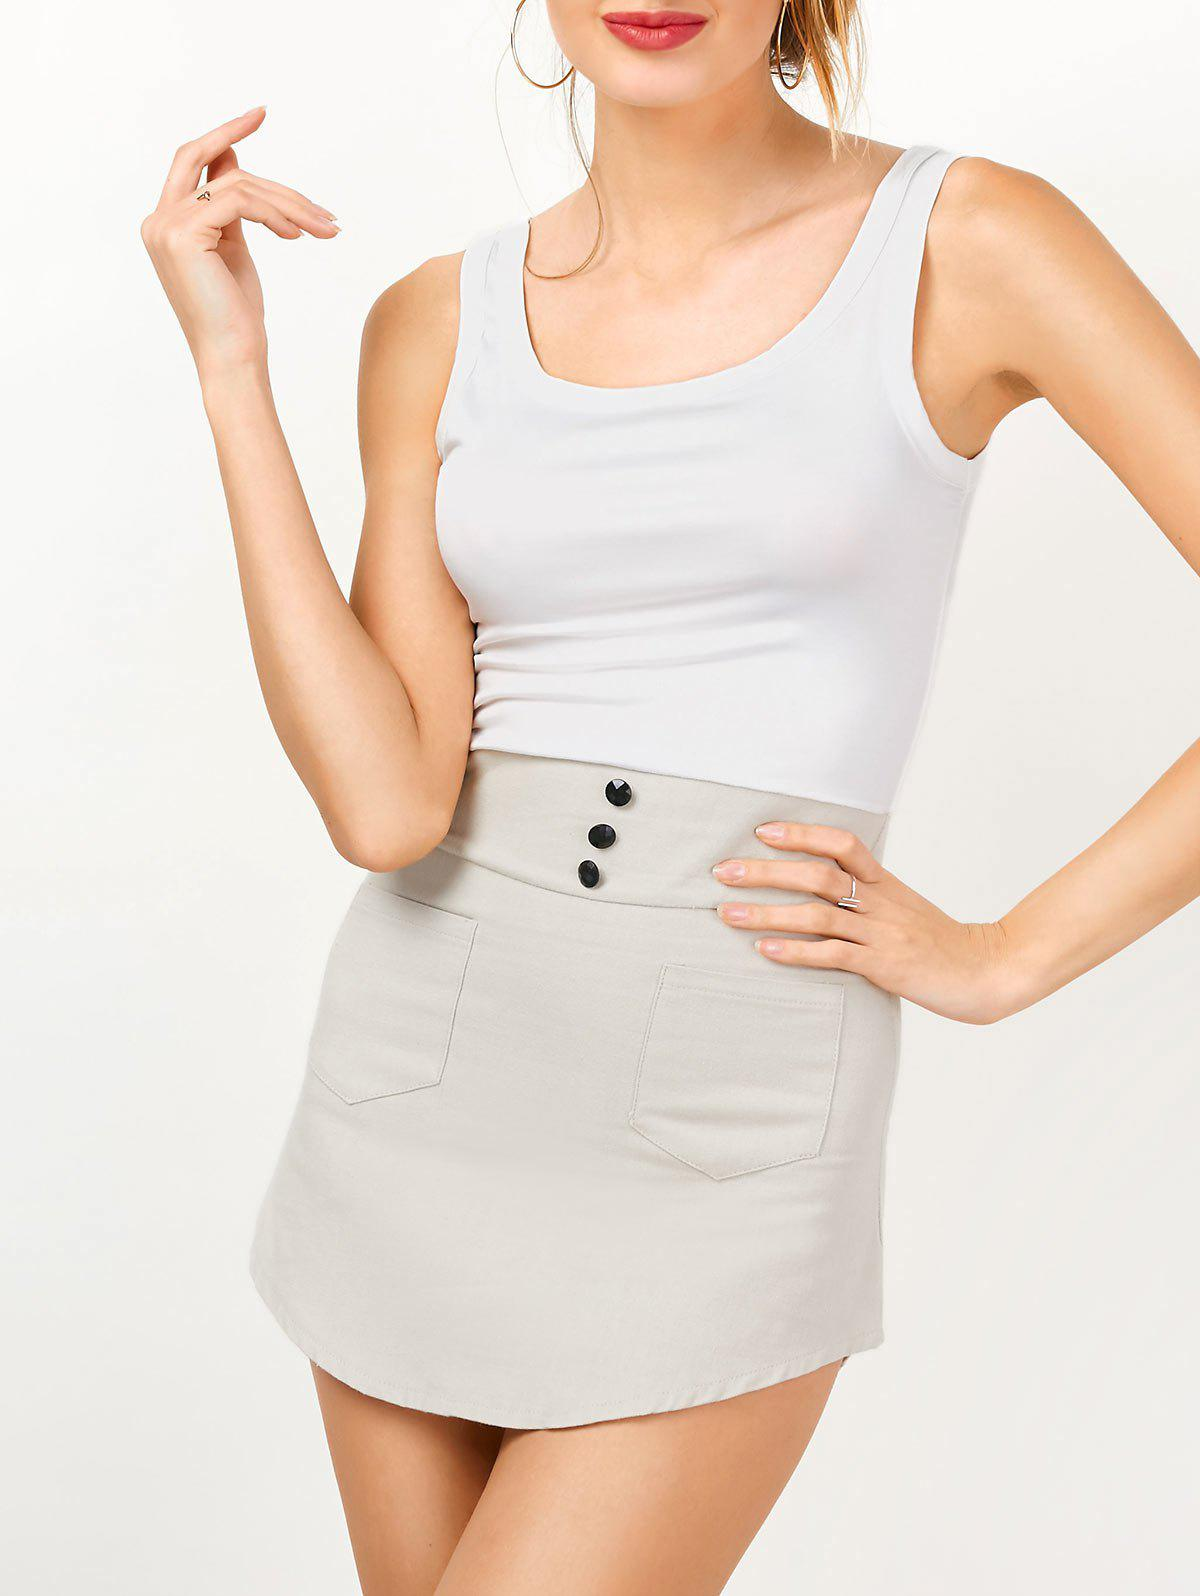 New Sleeveless Two Tone Mini Bodycon Sundress